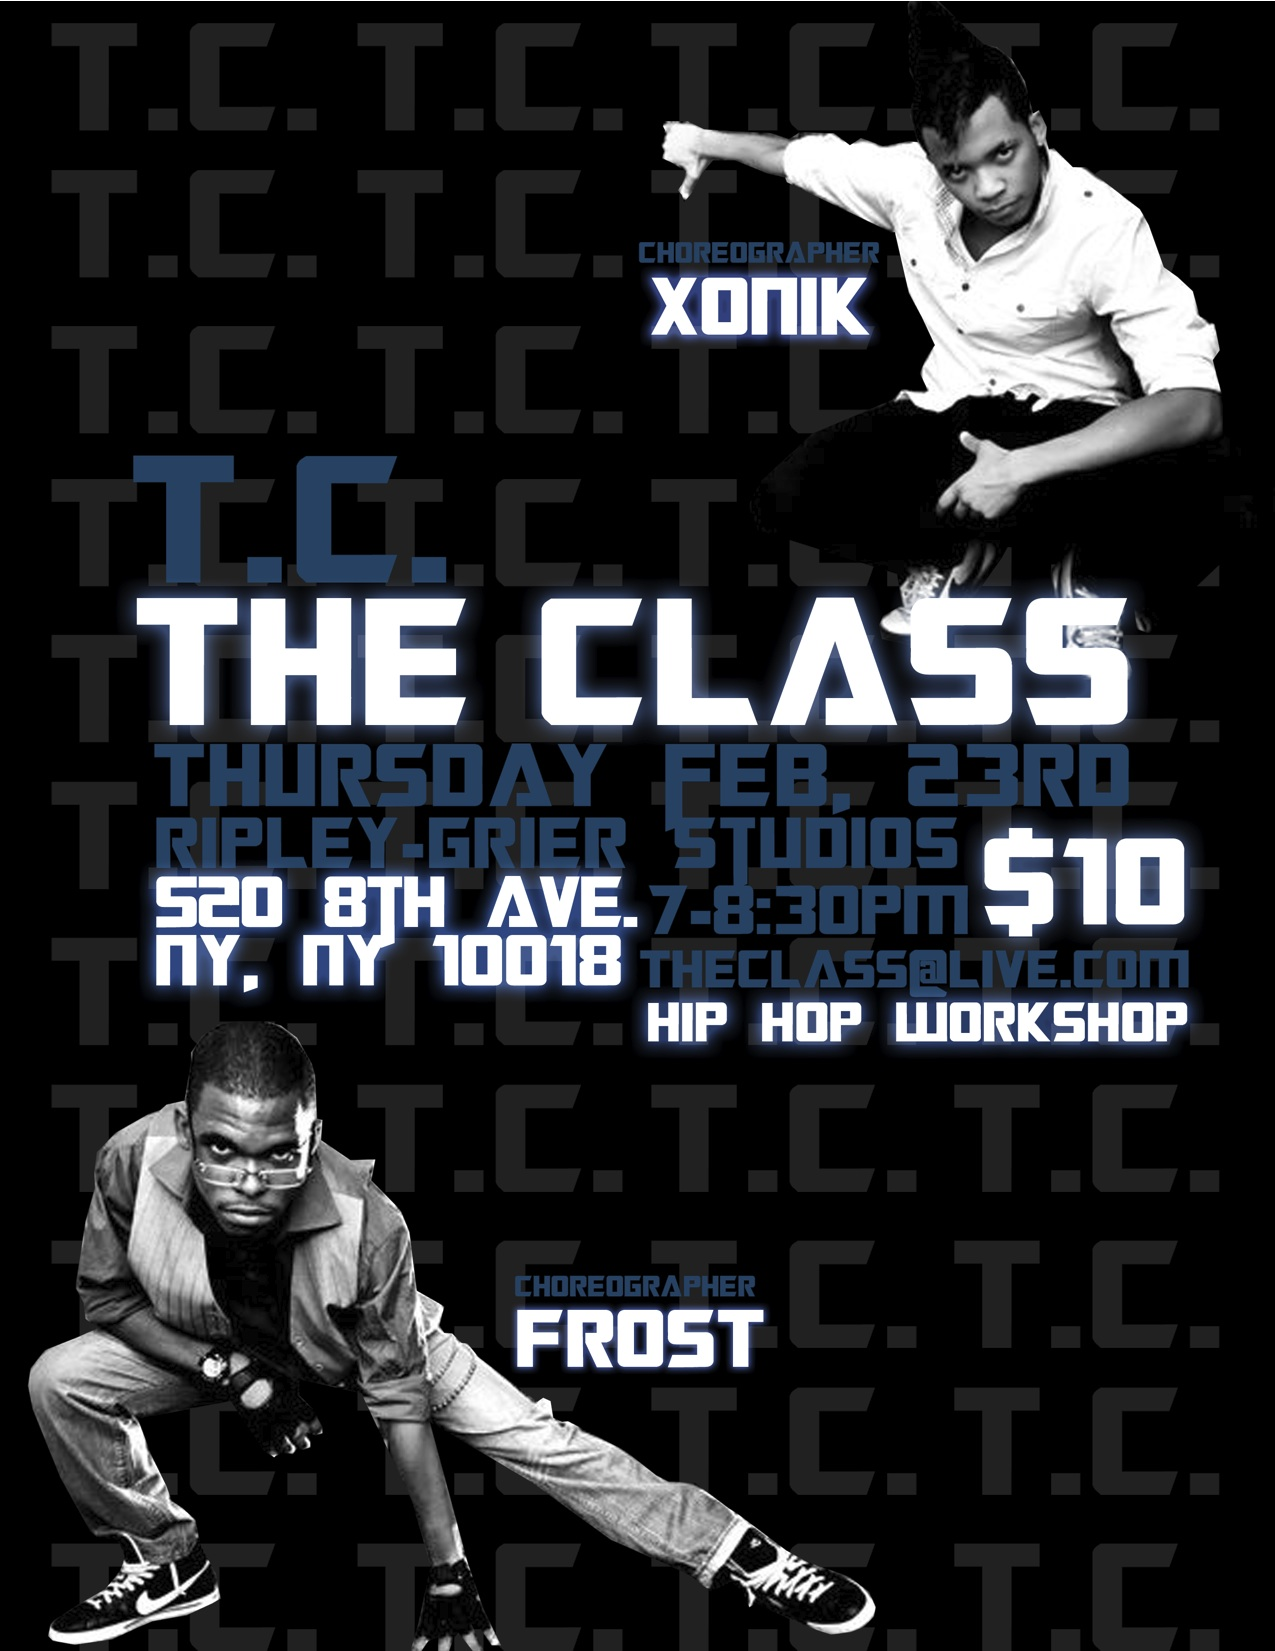 'The Class' NYC Hip Hop Workshop this Thursday